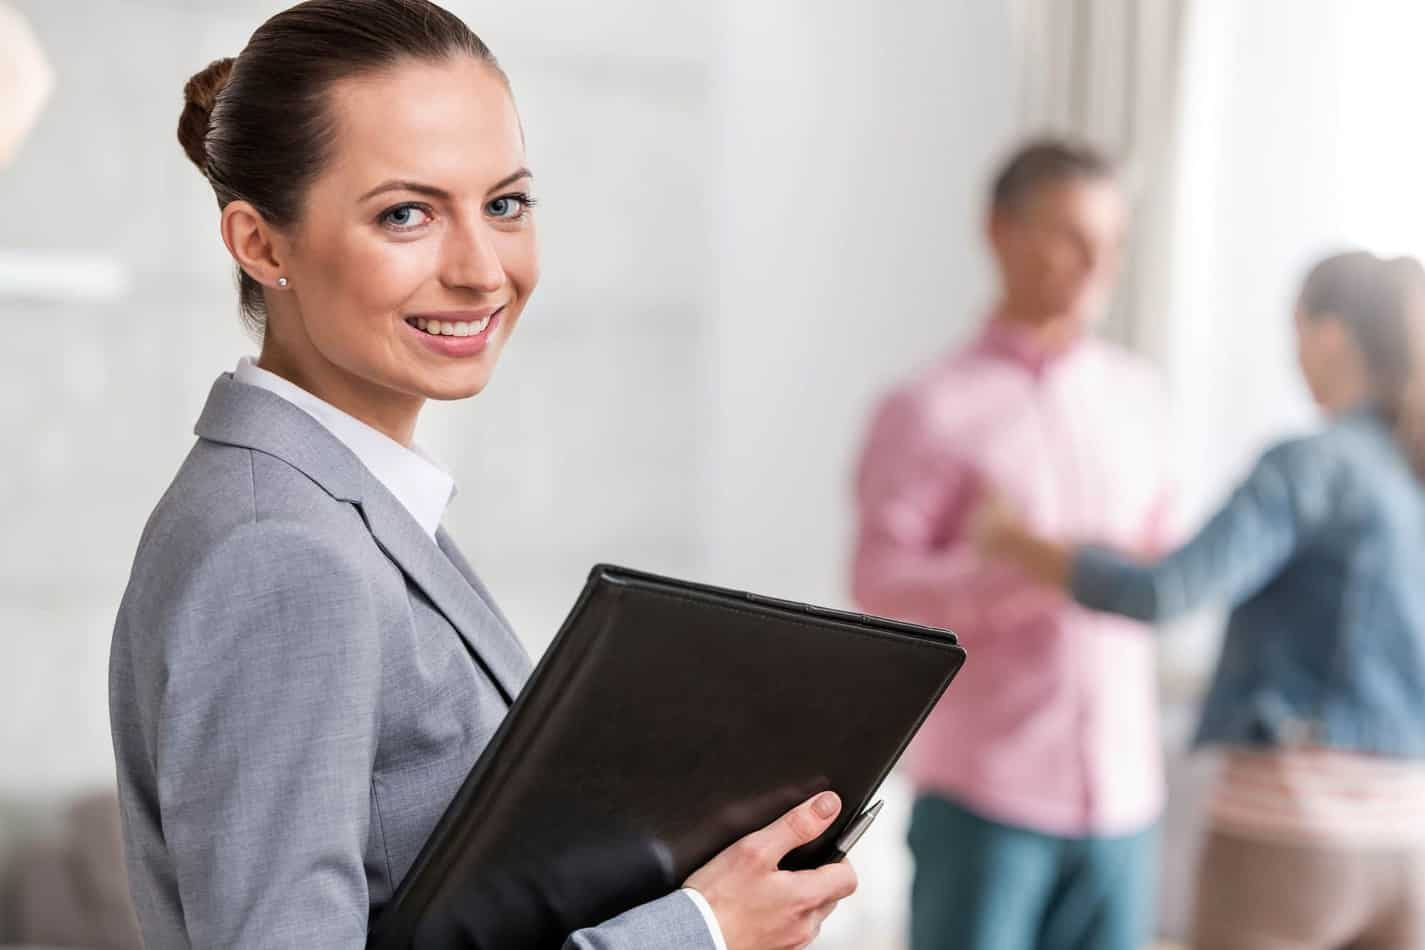 Portrait Of Smiling Young Female Realtor Holding Document With Clients In Background